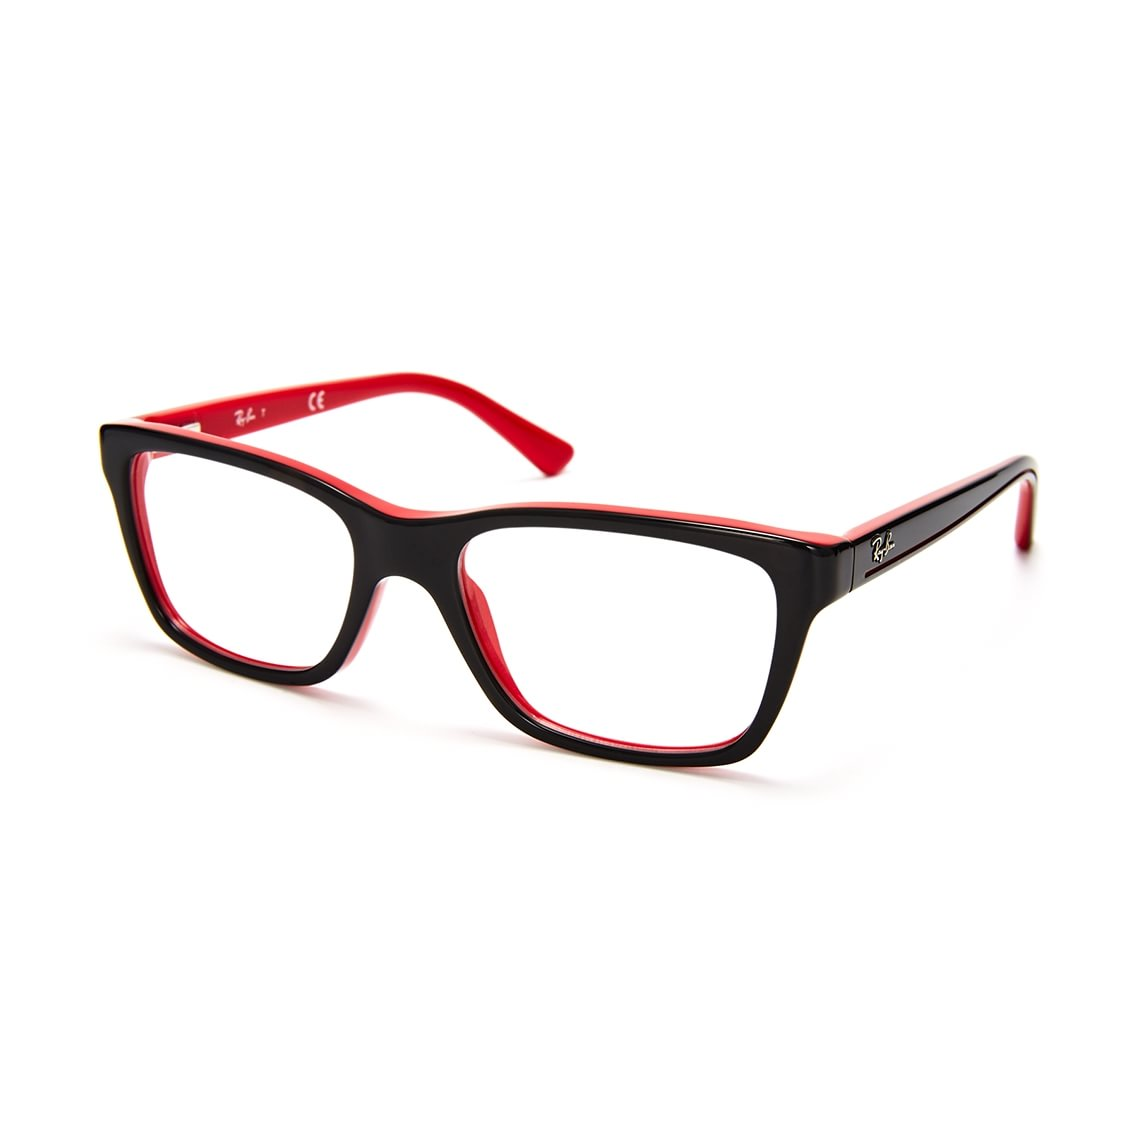 15bb70ff7c6 Ray-Ban RY Junior Vista 1536 3573 4816 - Profil Optik